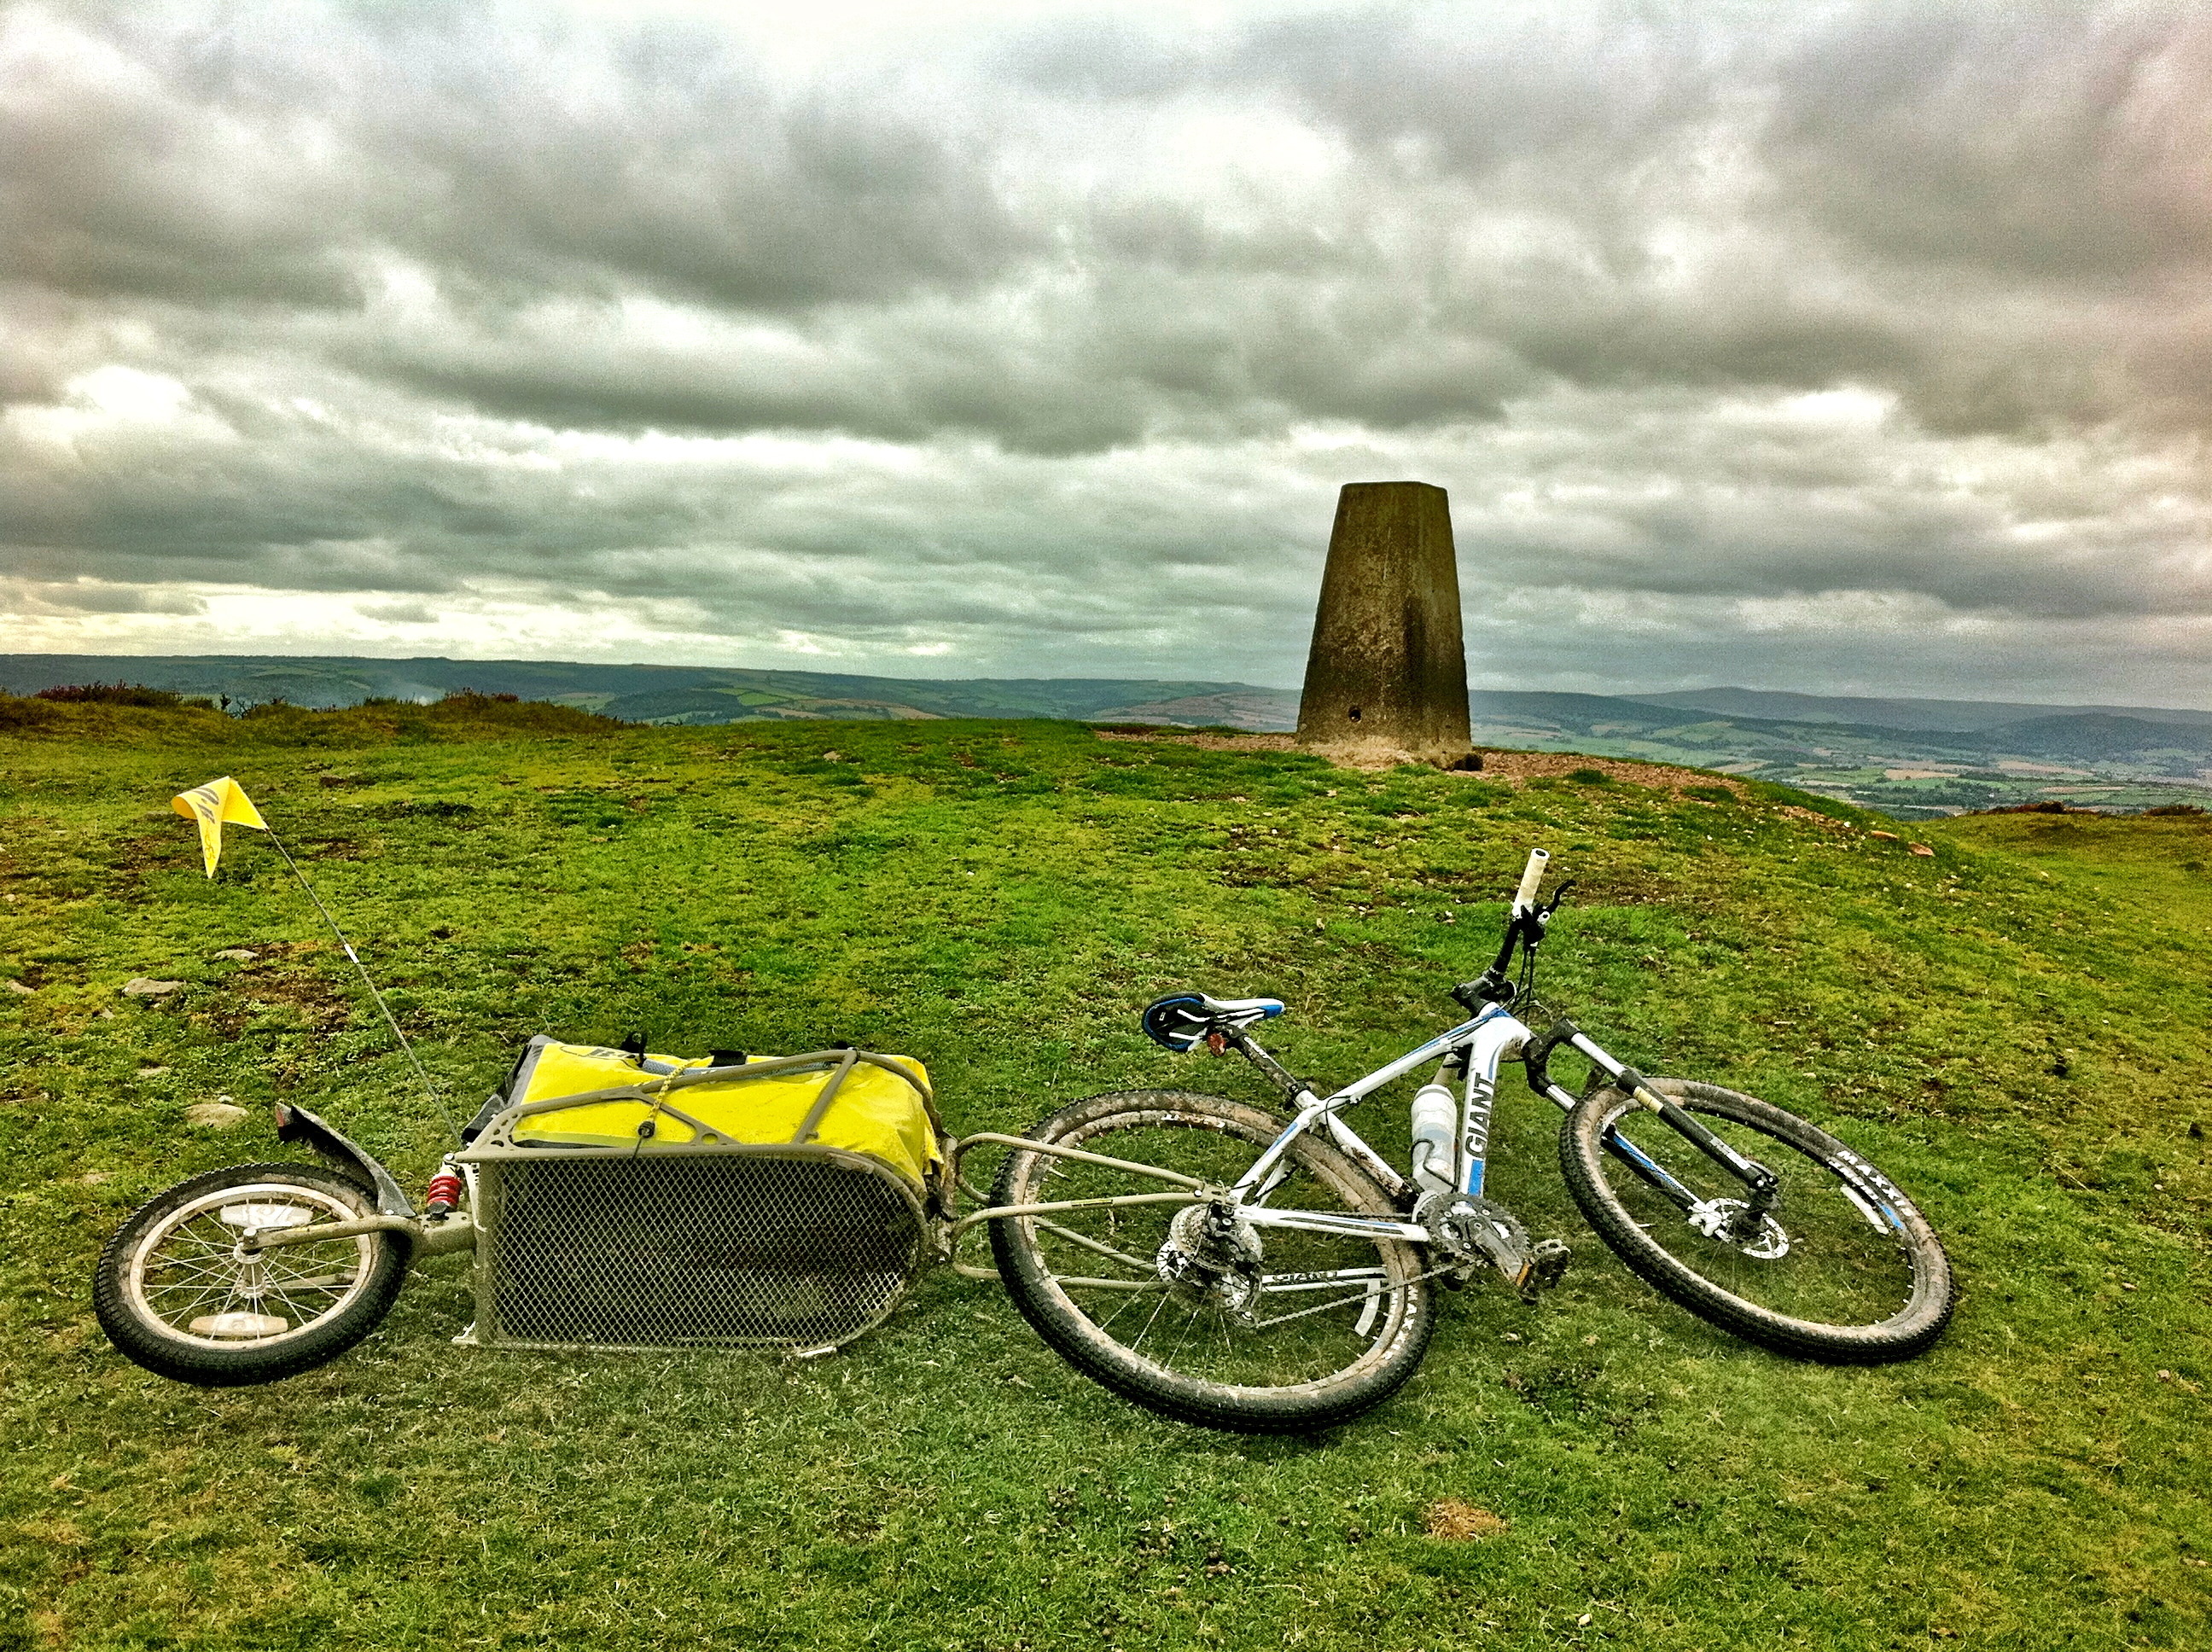 Giant Talon 29er + Bob Ibex Trailer + Quantocks Rough Stuff Cycling = Quite a Day